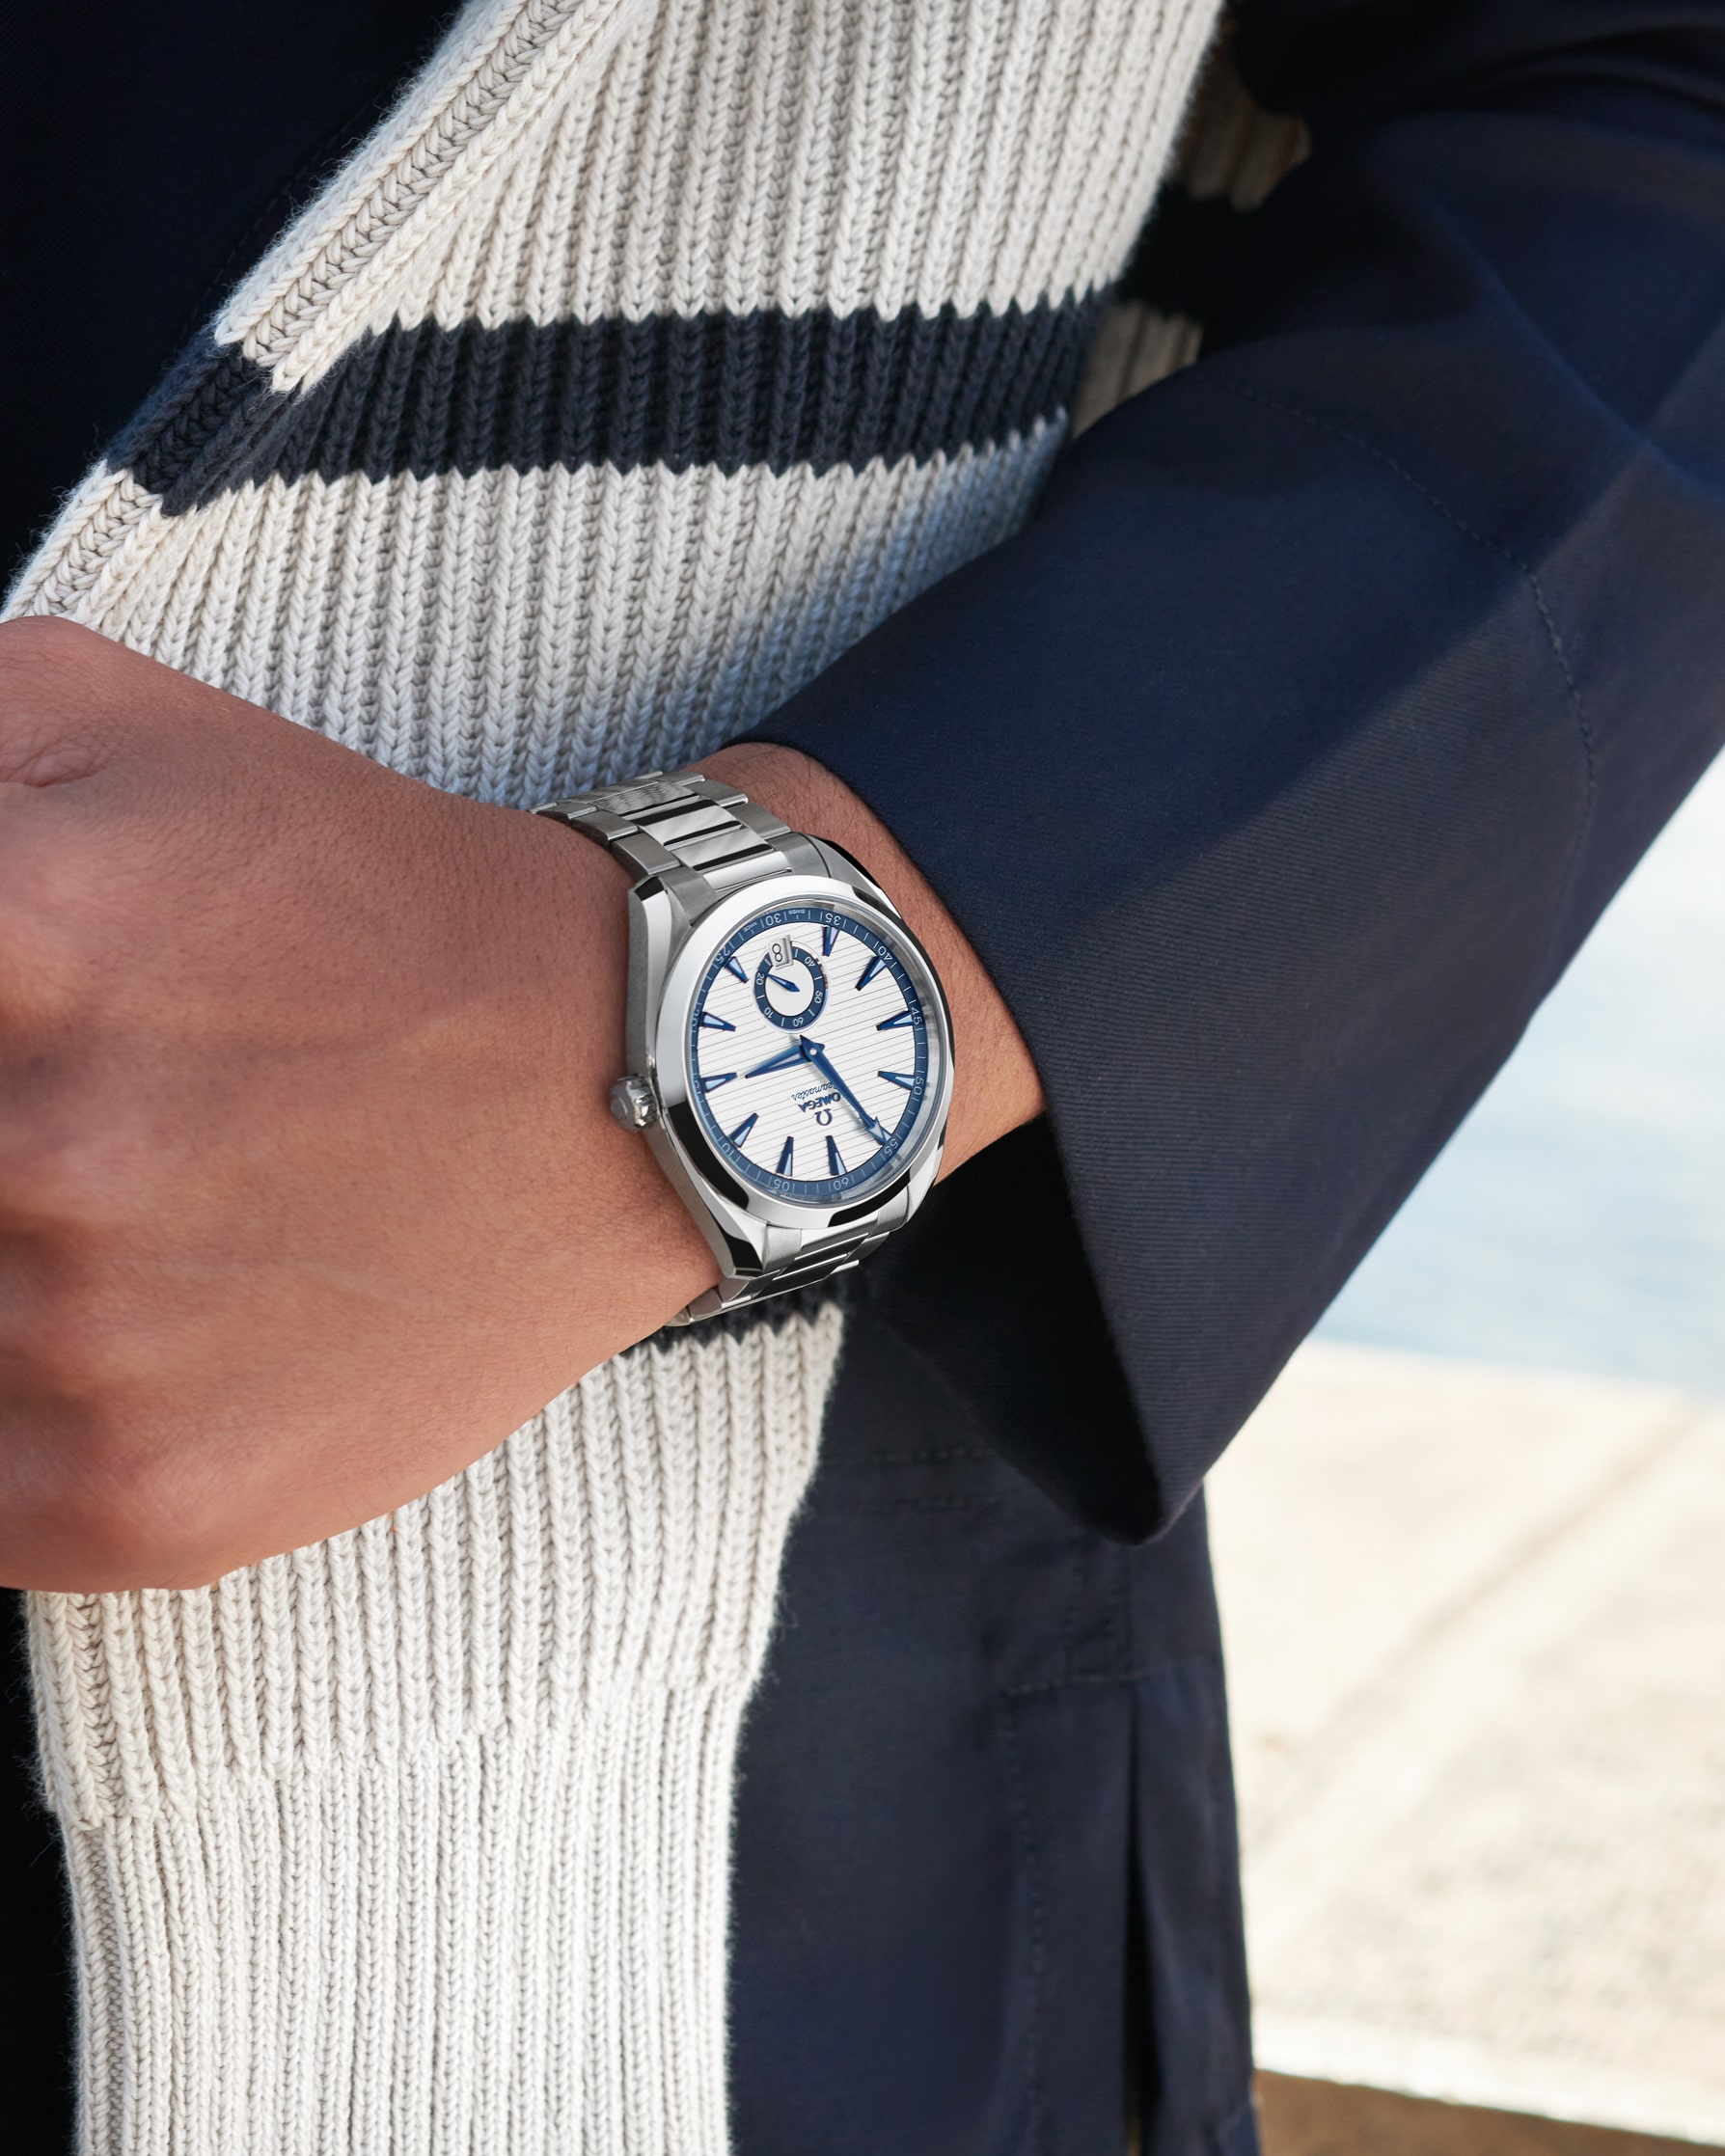 Omega small seconds on wrist